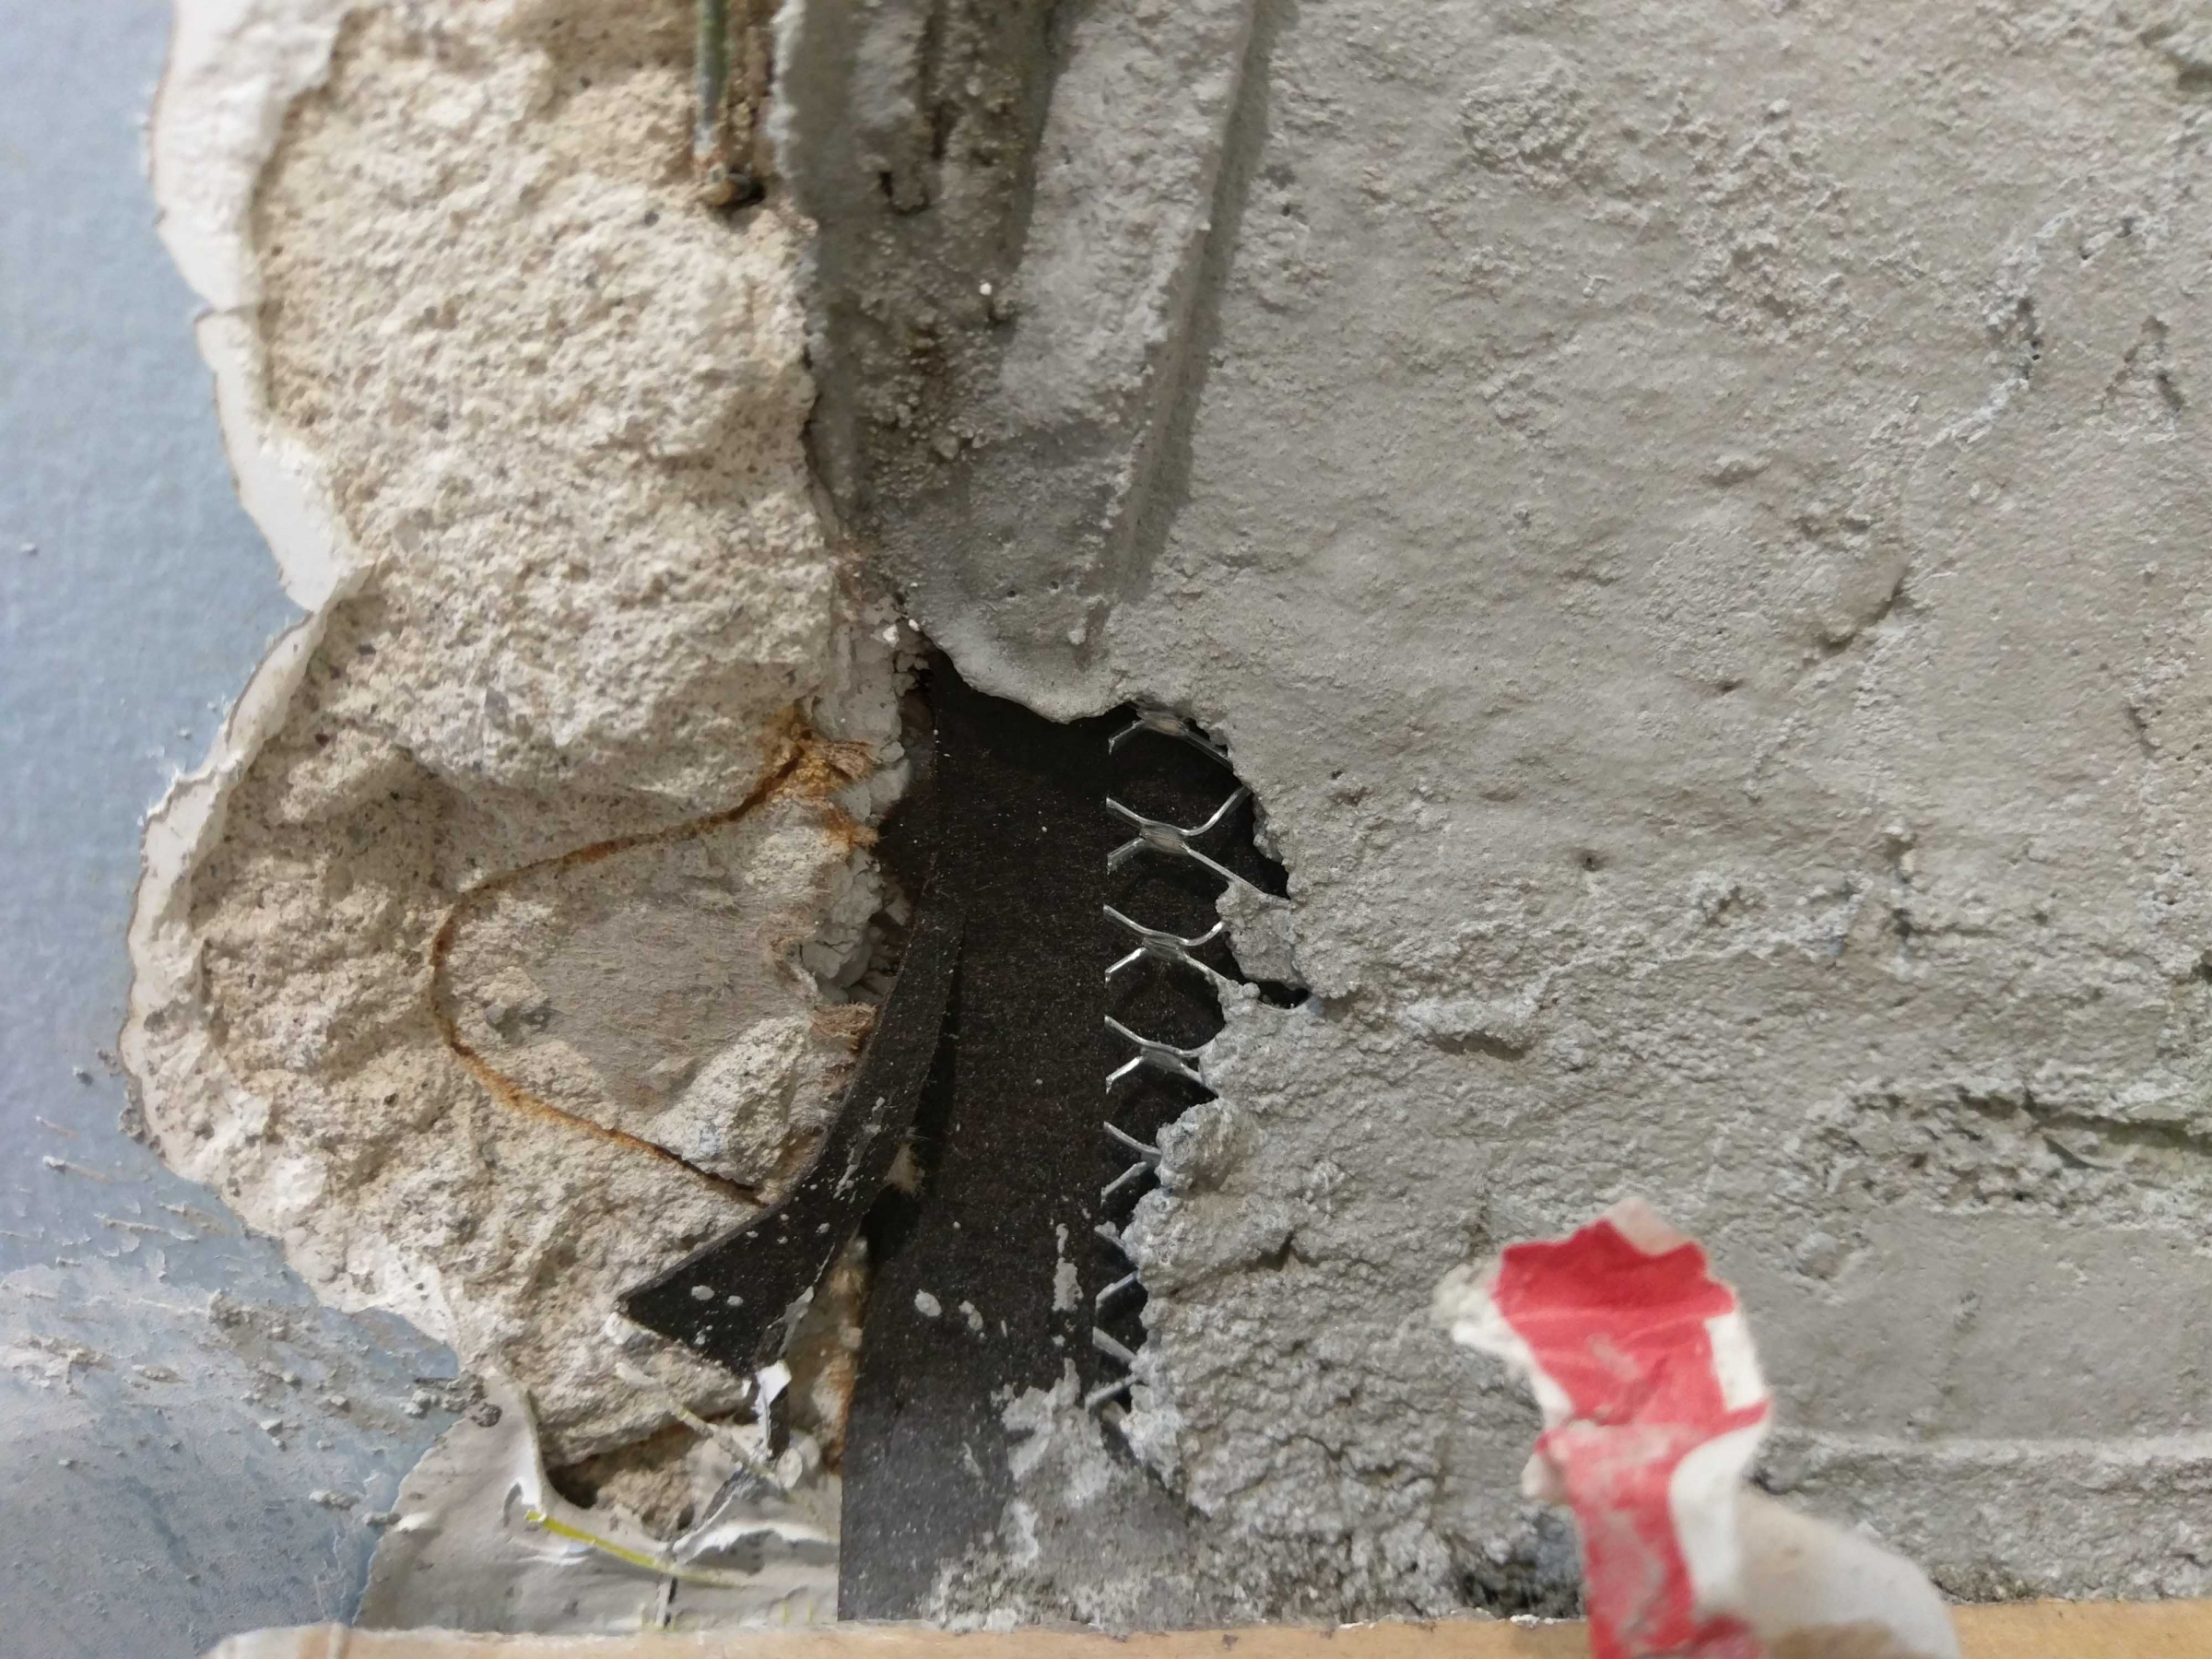 Floating Tile - Should We Be Worried? - Torn Paper and Mud Gaps-05-holes.jpg